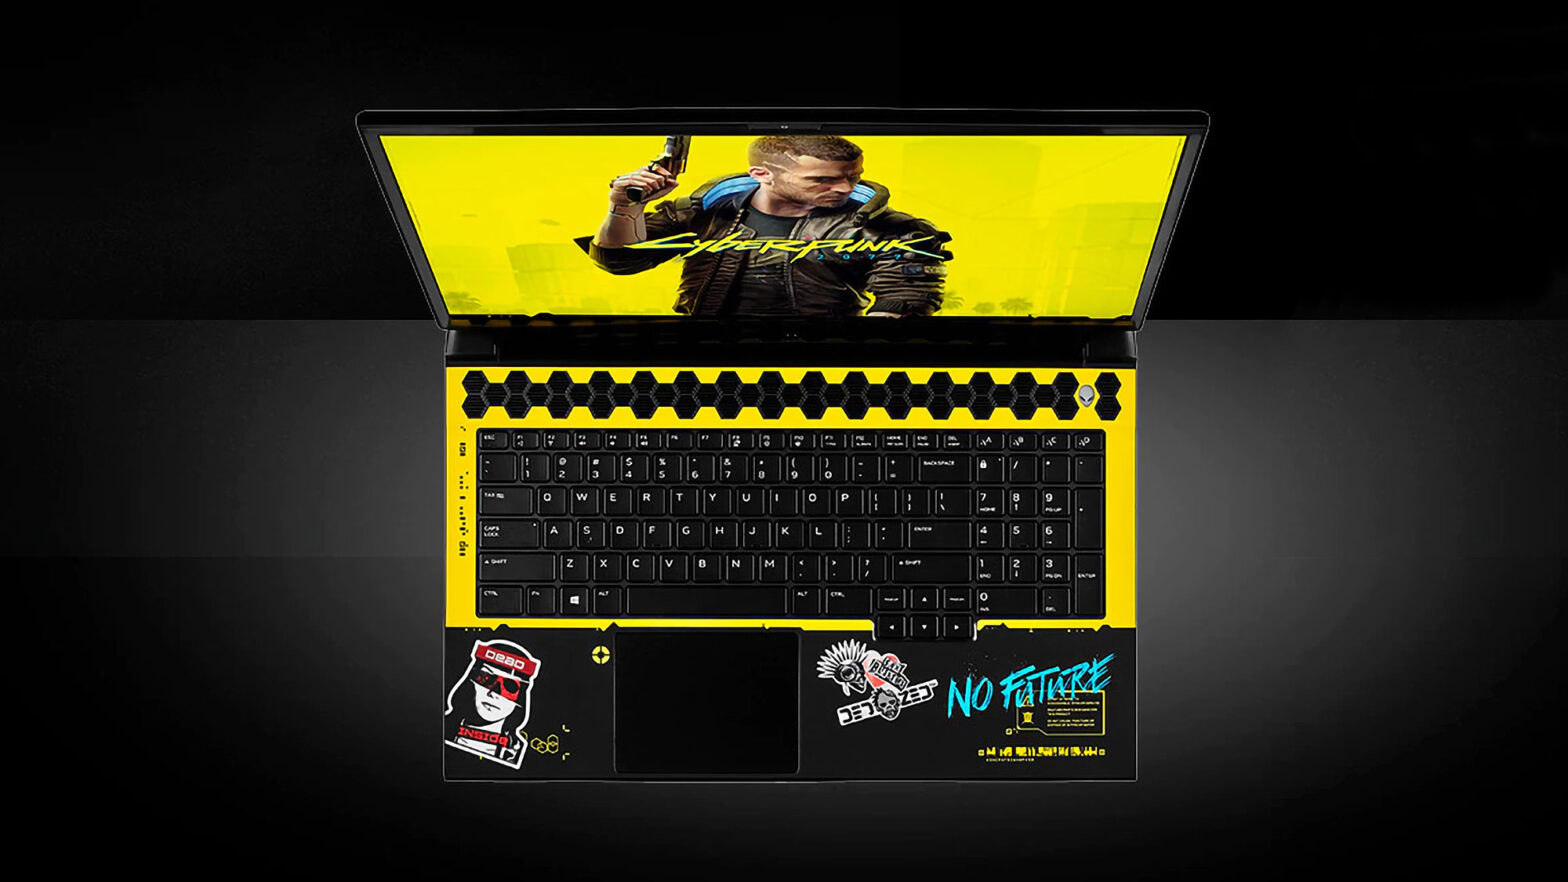 Cyberpunk 2077 Dbrand Skin for Alienware